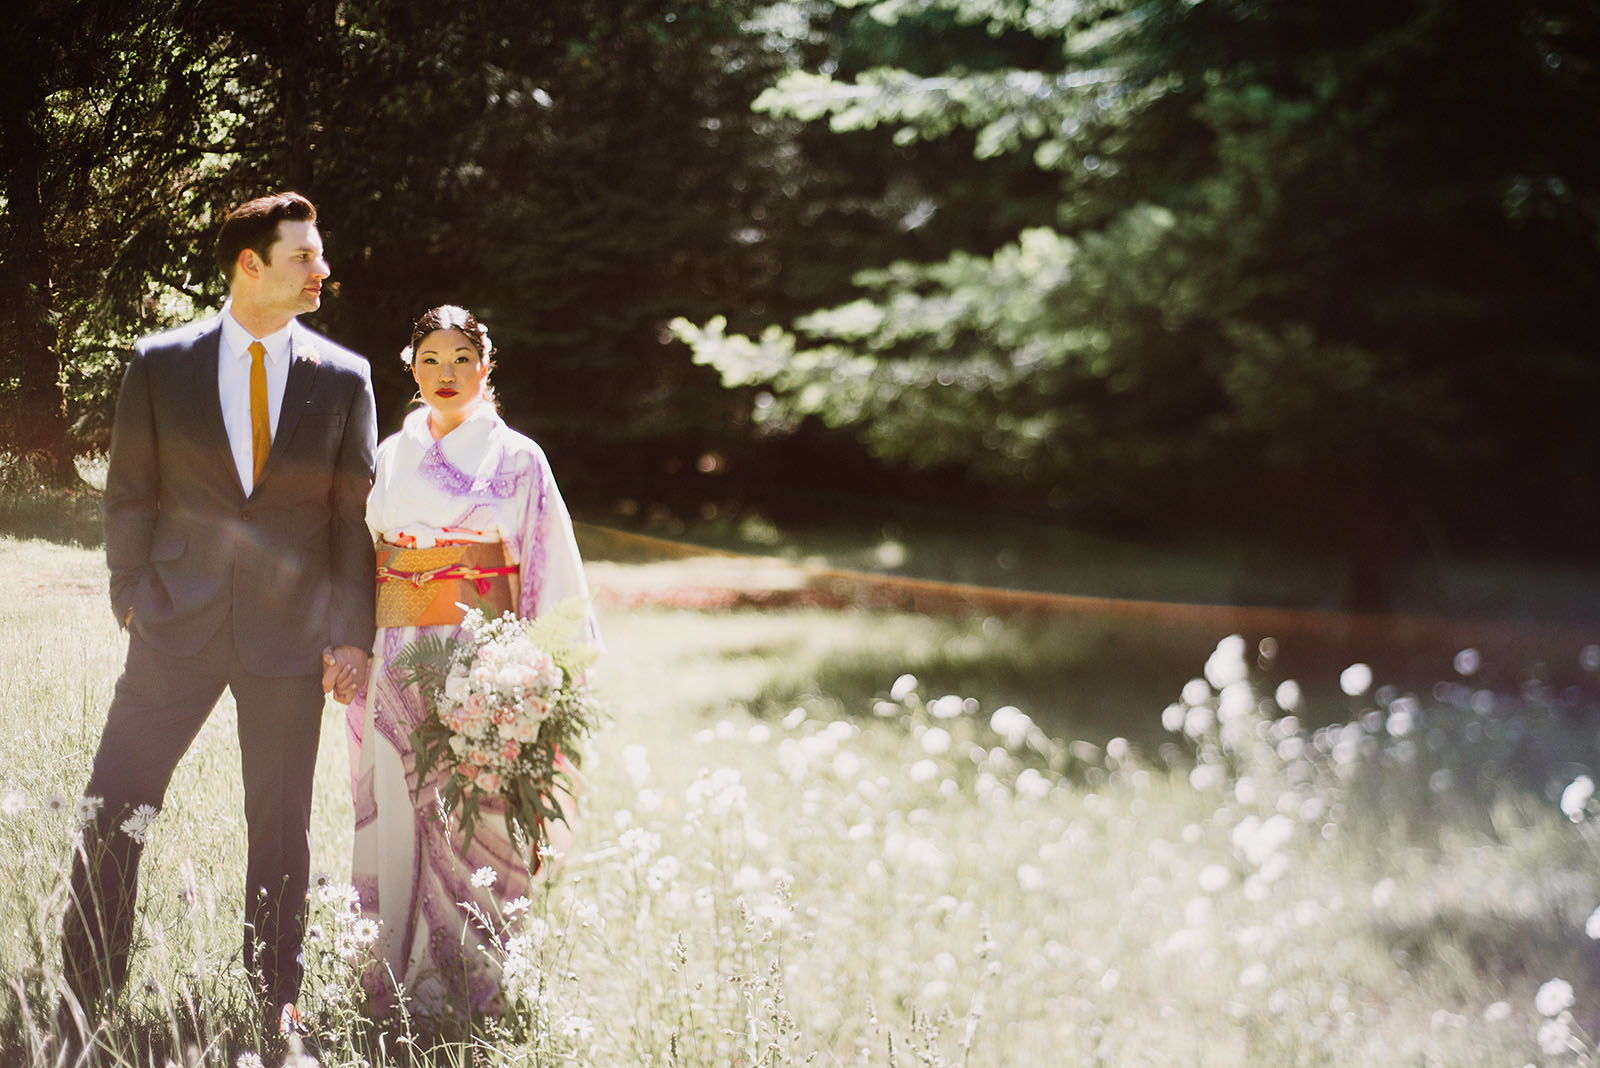 Lens flare portrait of bride and groom | Olympic National Park Wedding